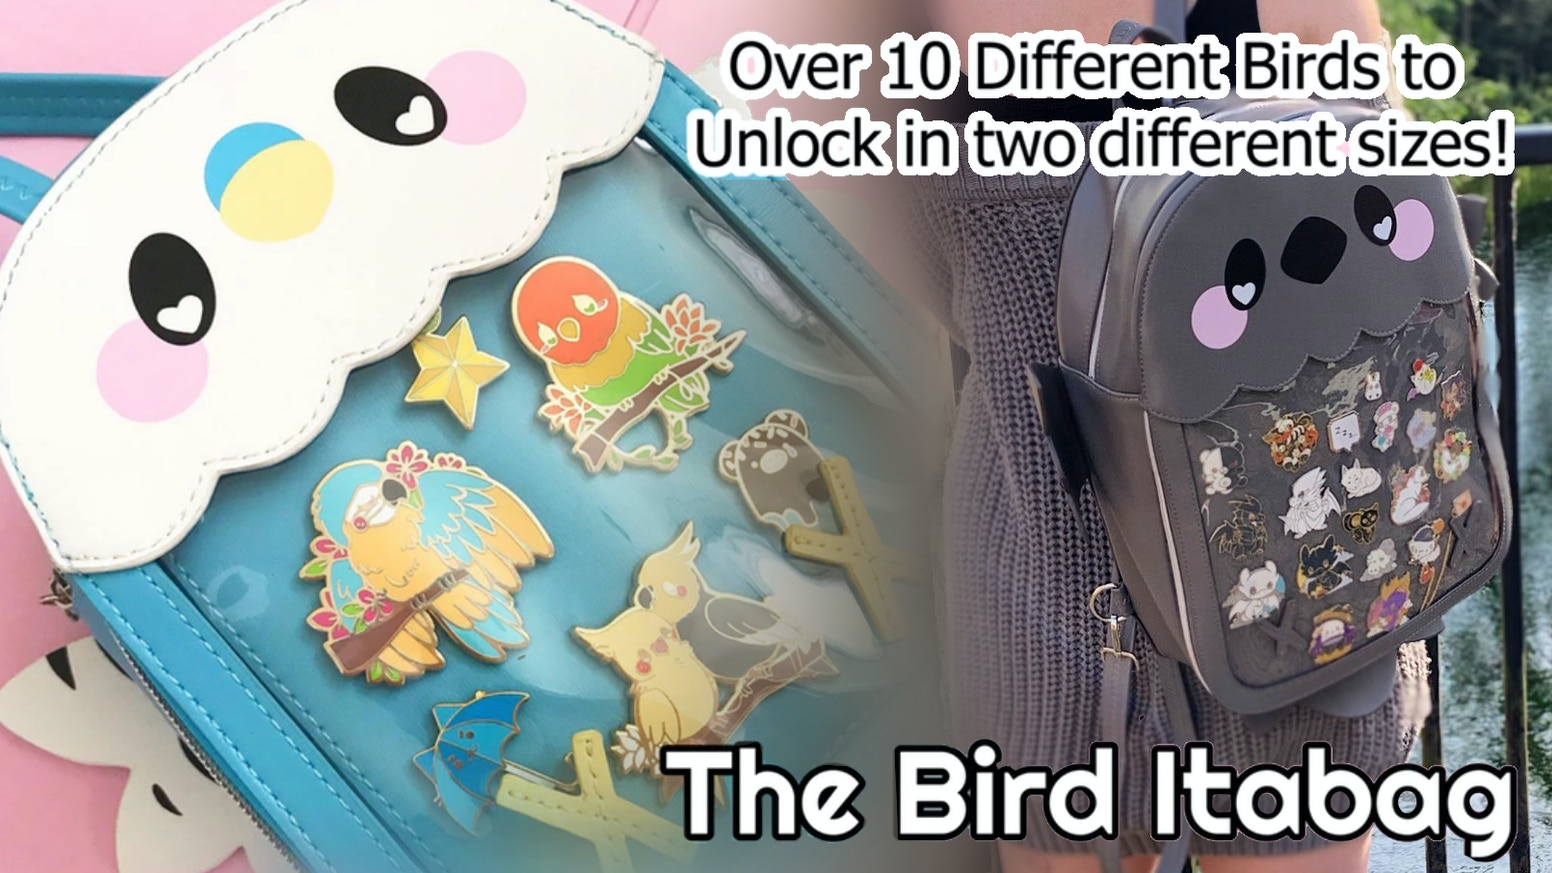 Ten kawaii birds to unlock in two different size bags - with space to display your beloved pins and other belongings!